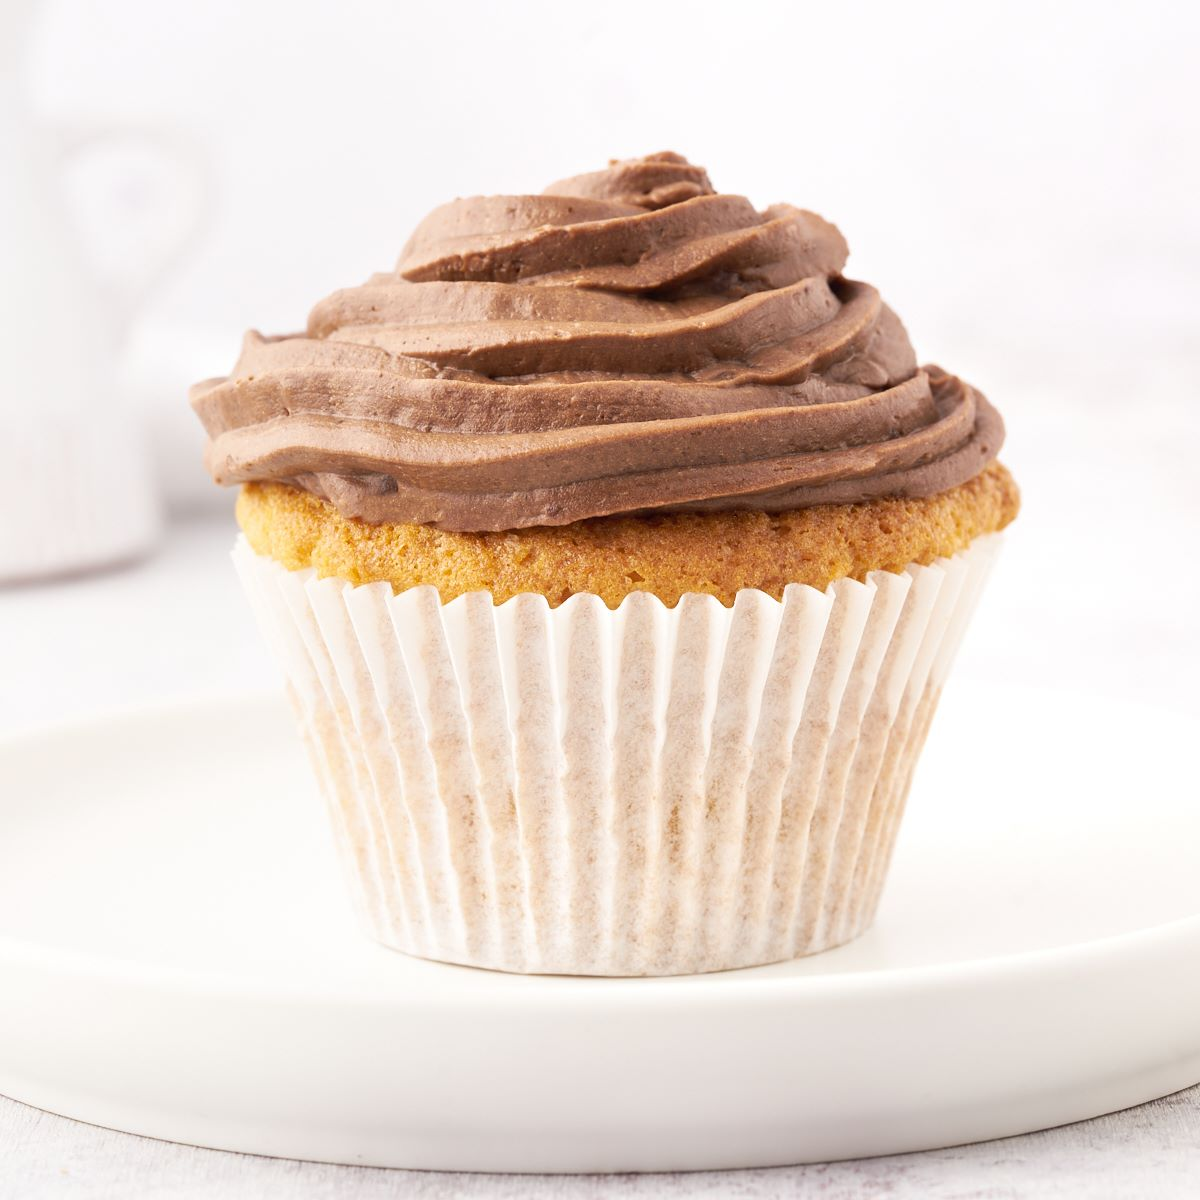 A vanilla cupcake frosted with swirled Nutella frosting.